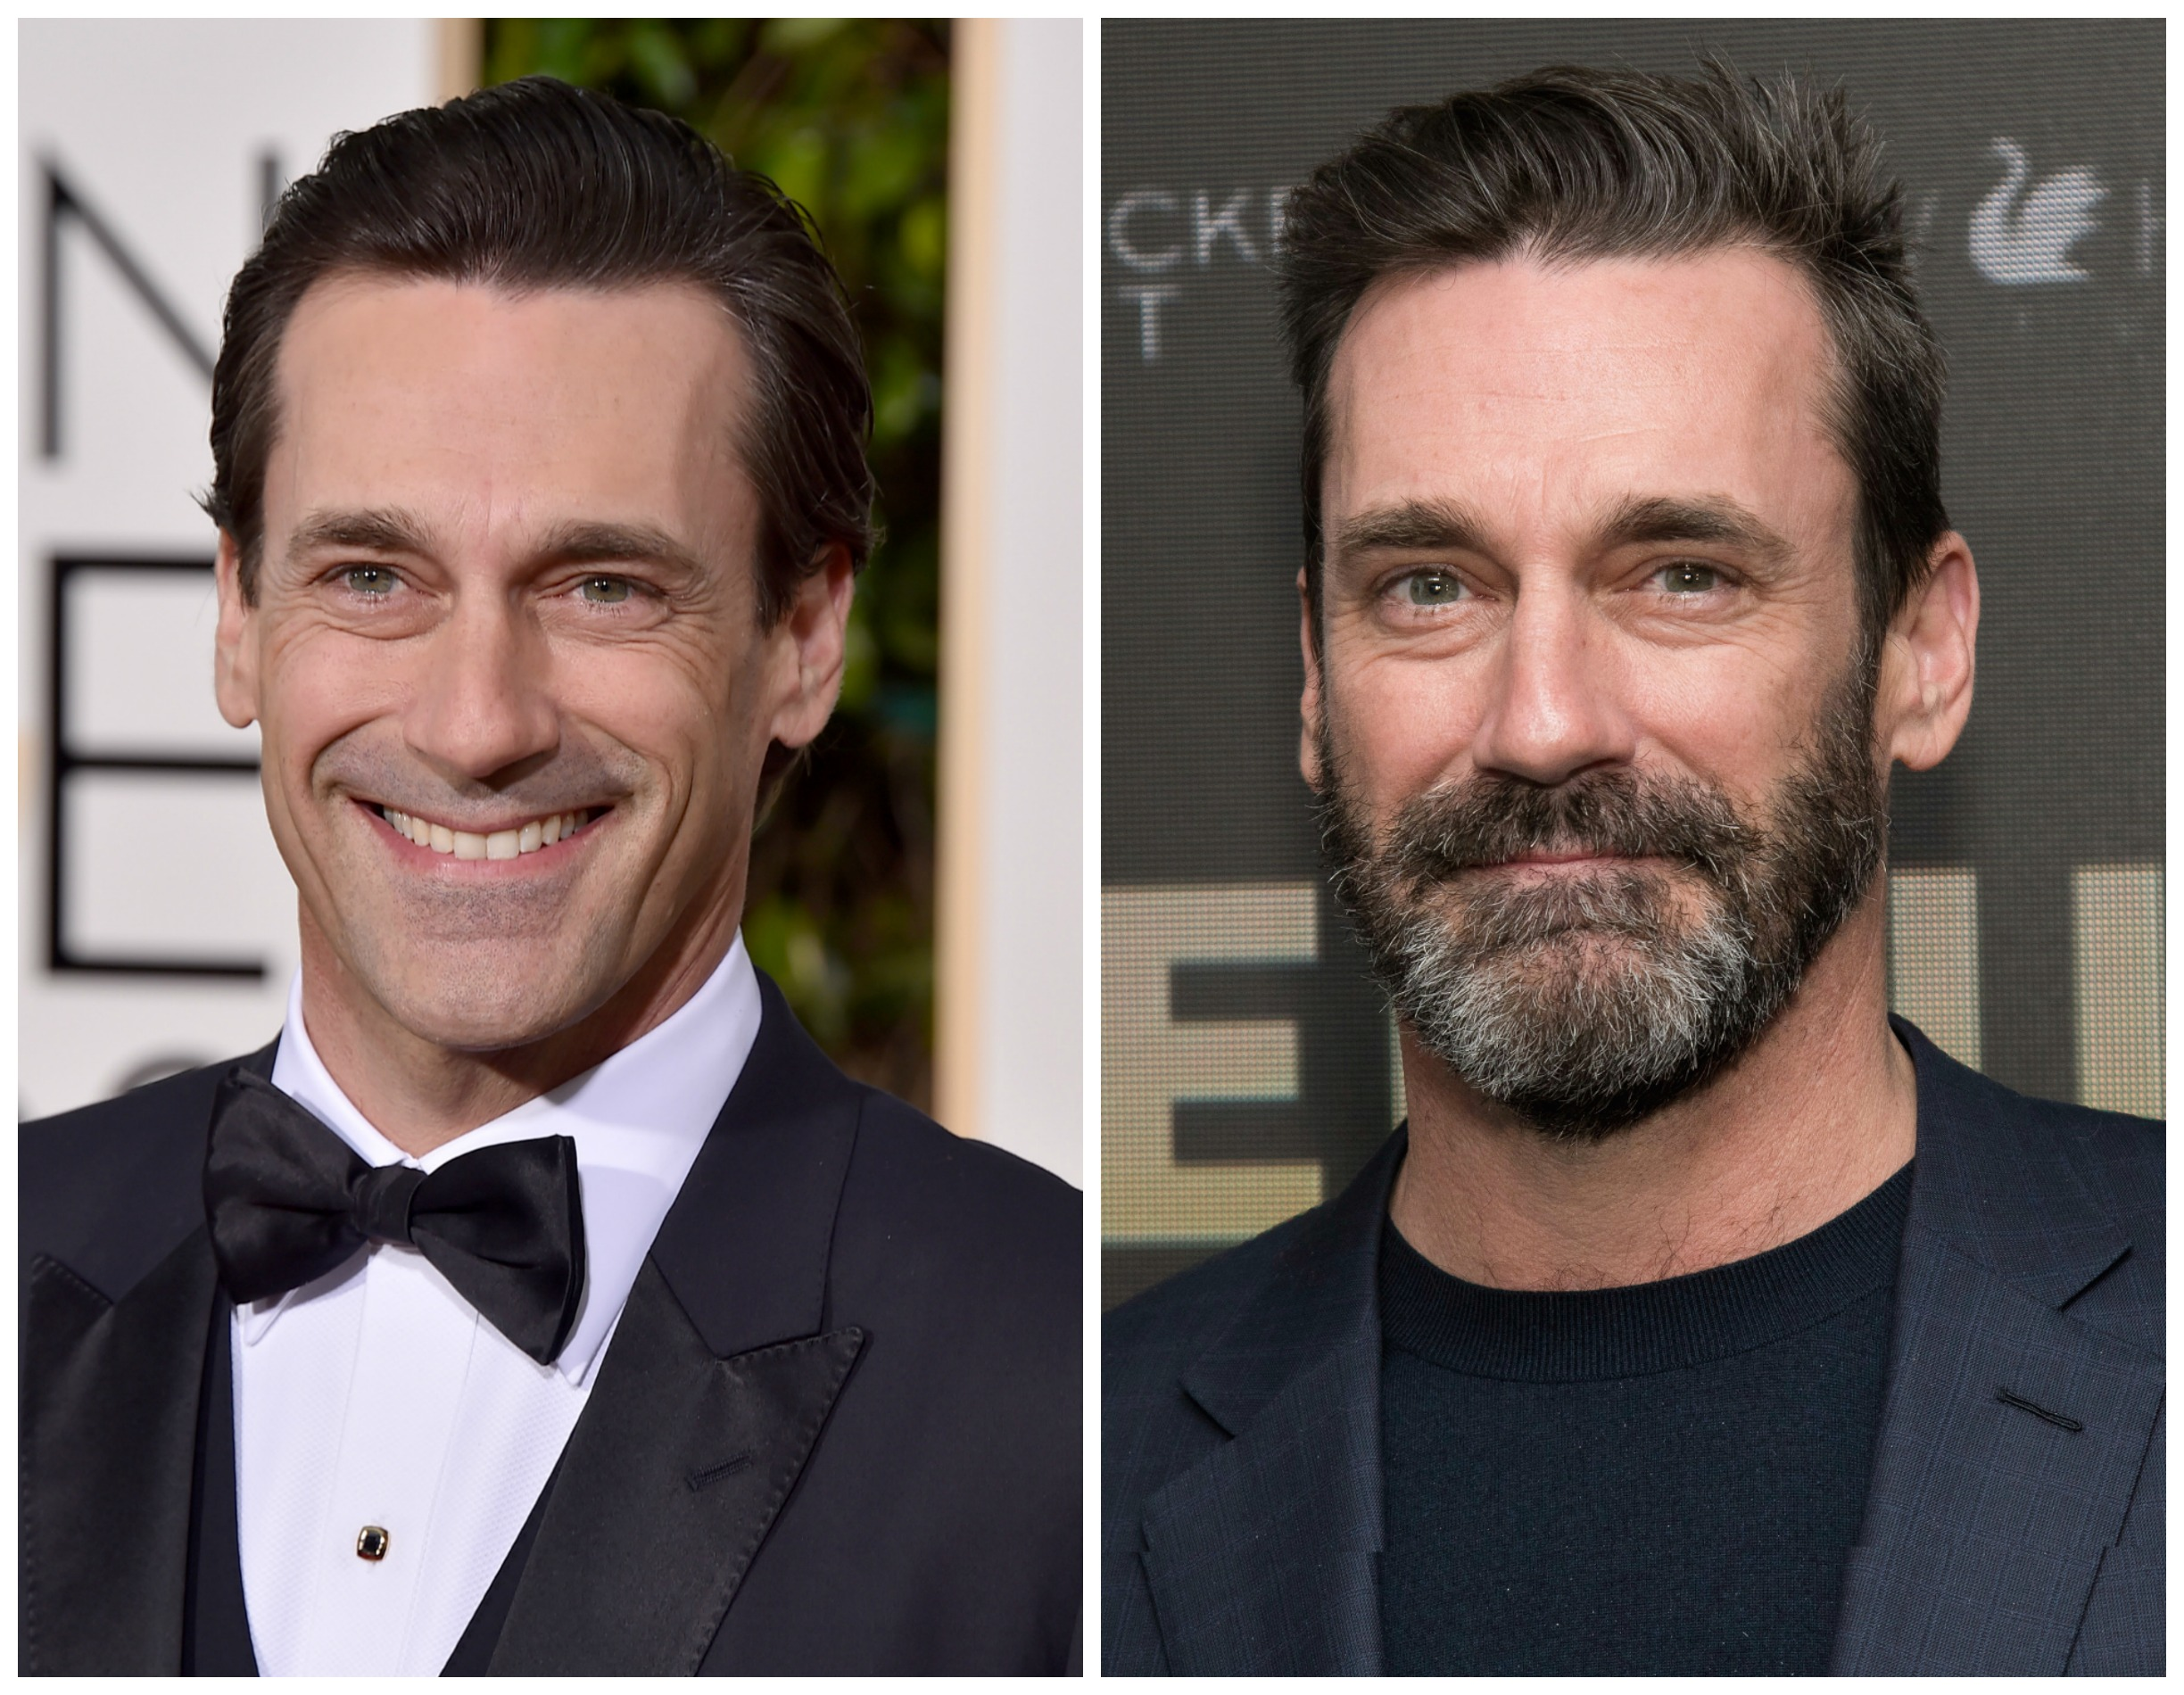 Beard or no beard: what's the best look for these celebs?